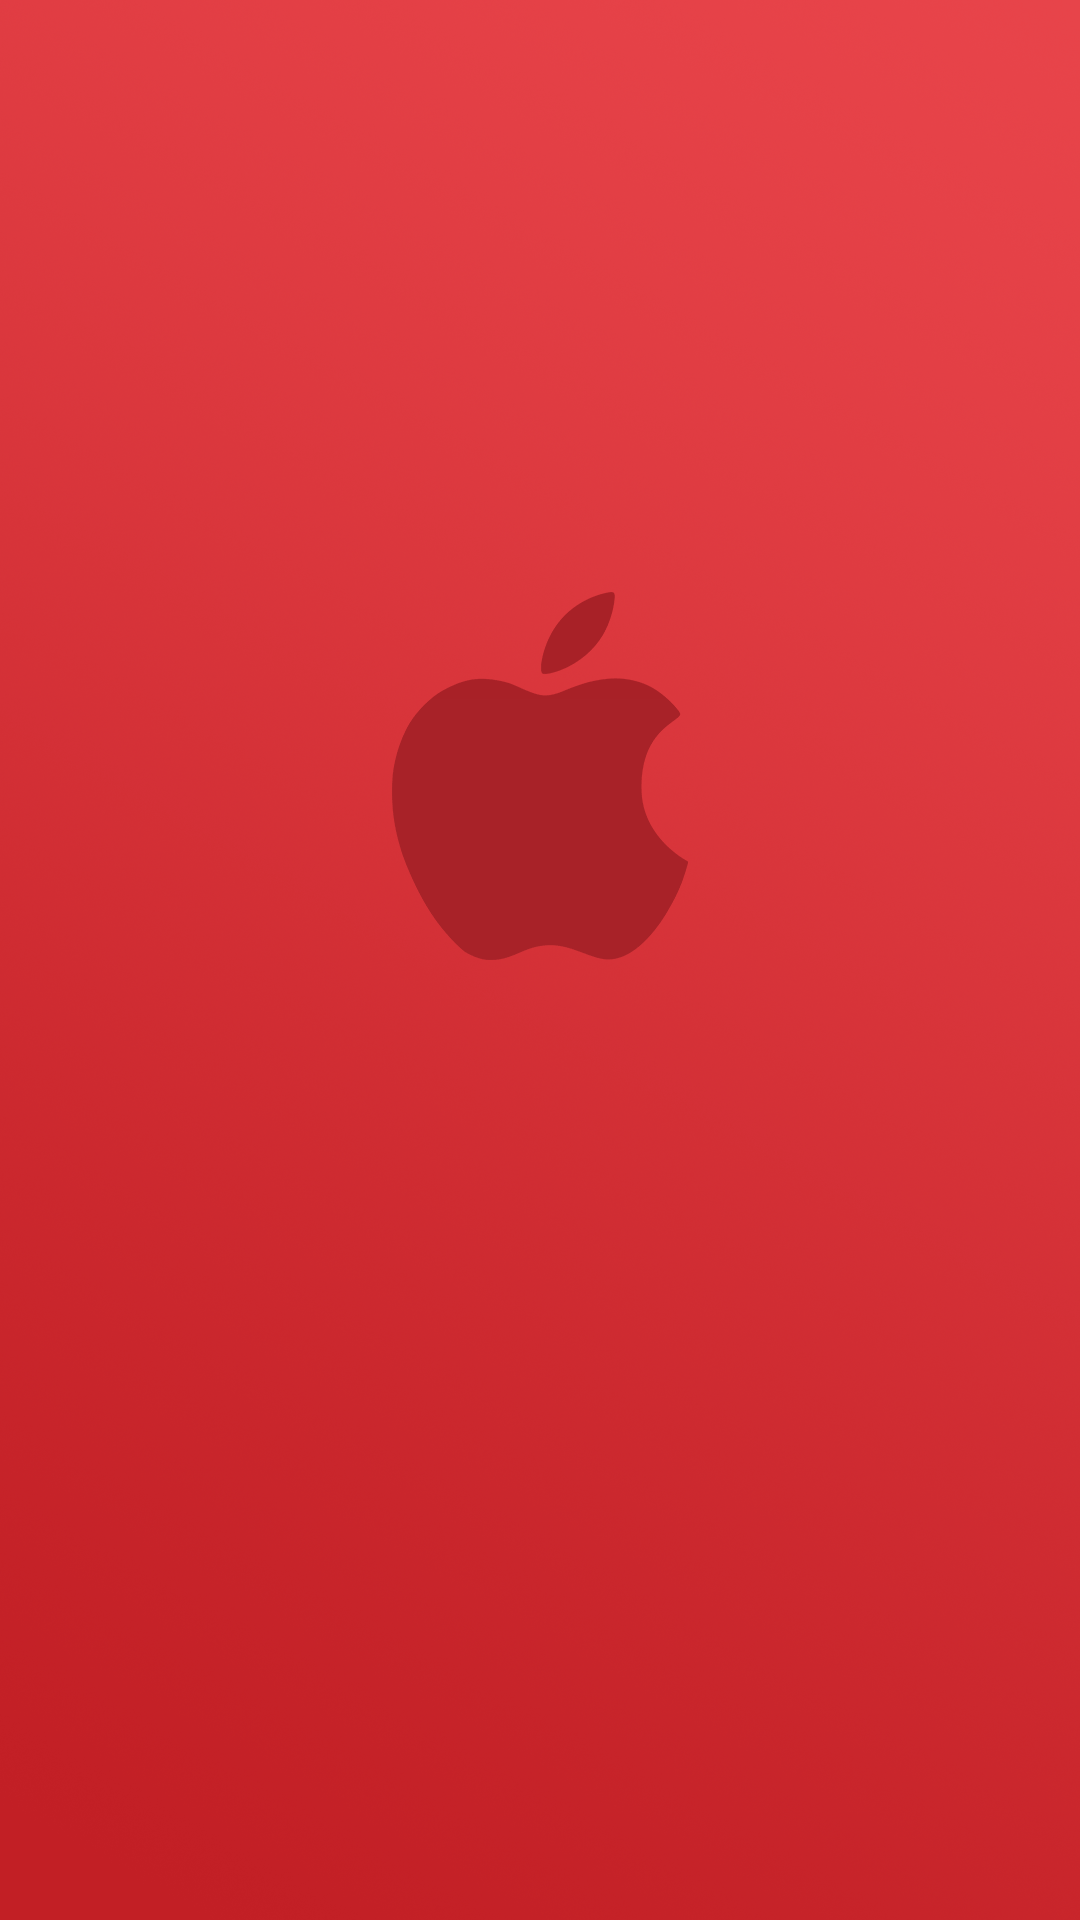 inspired by apple - photo #22